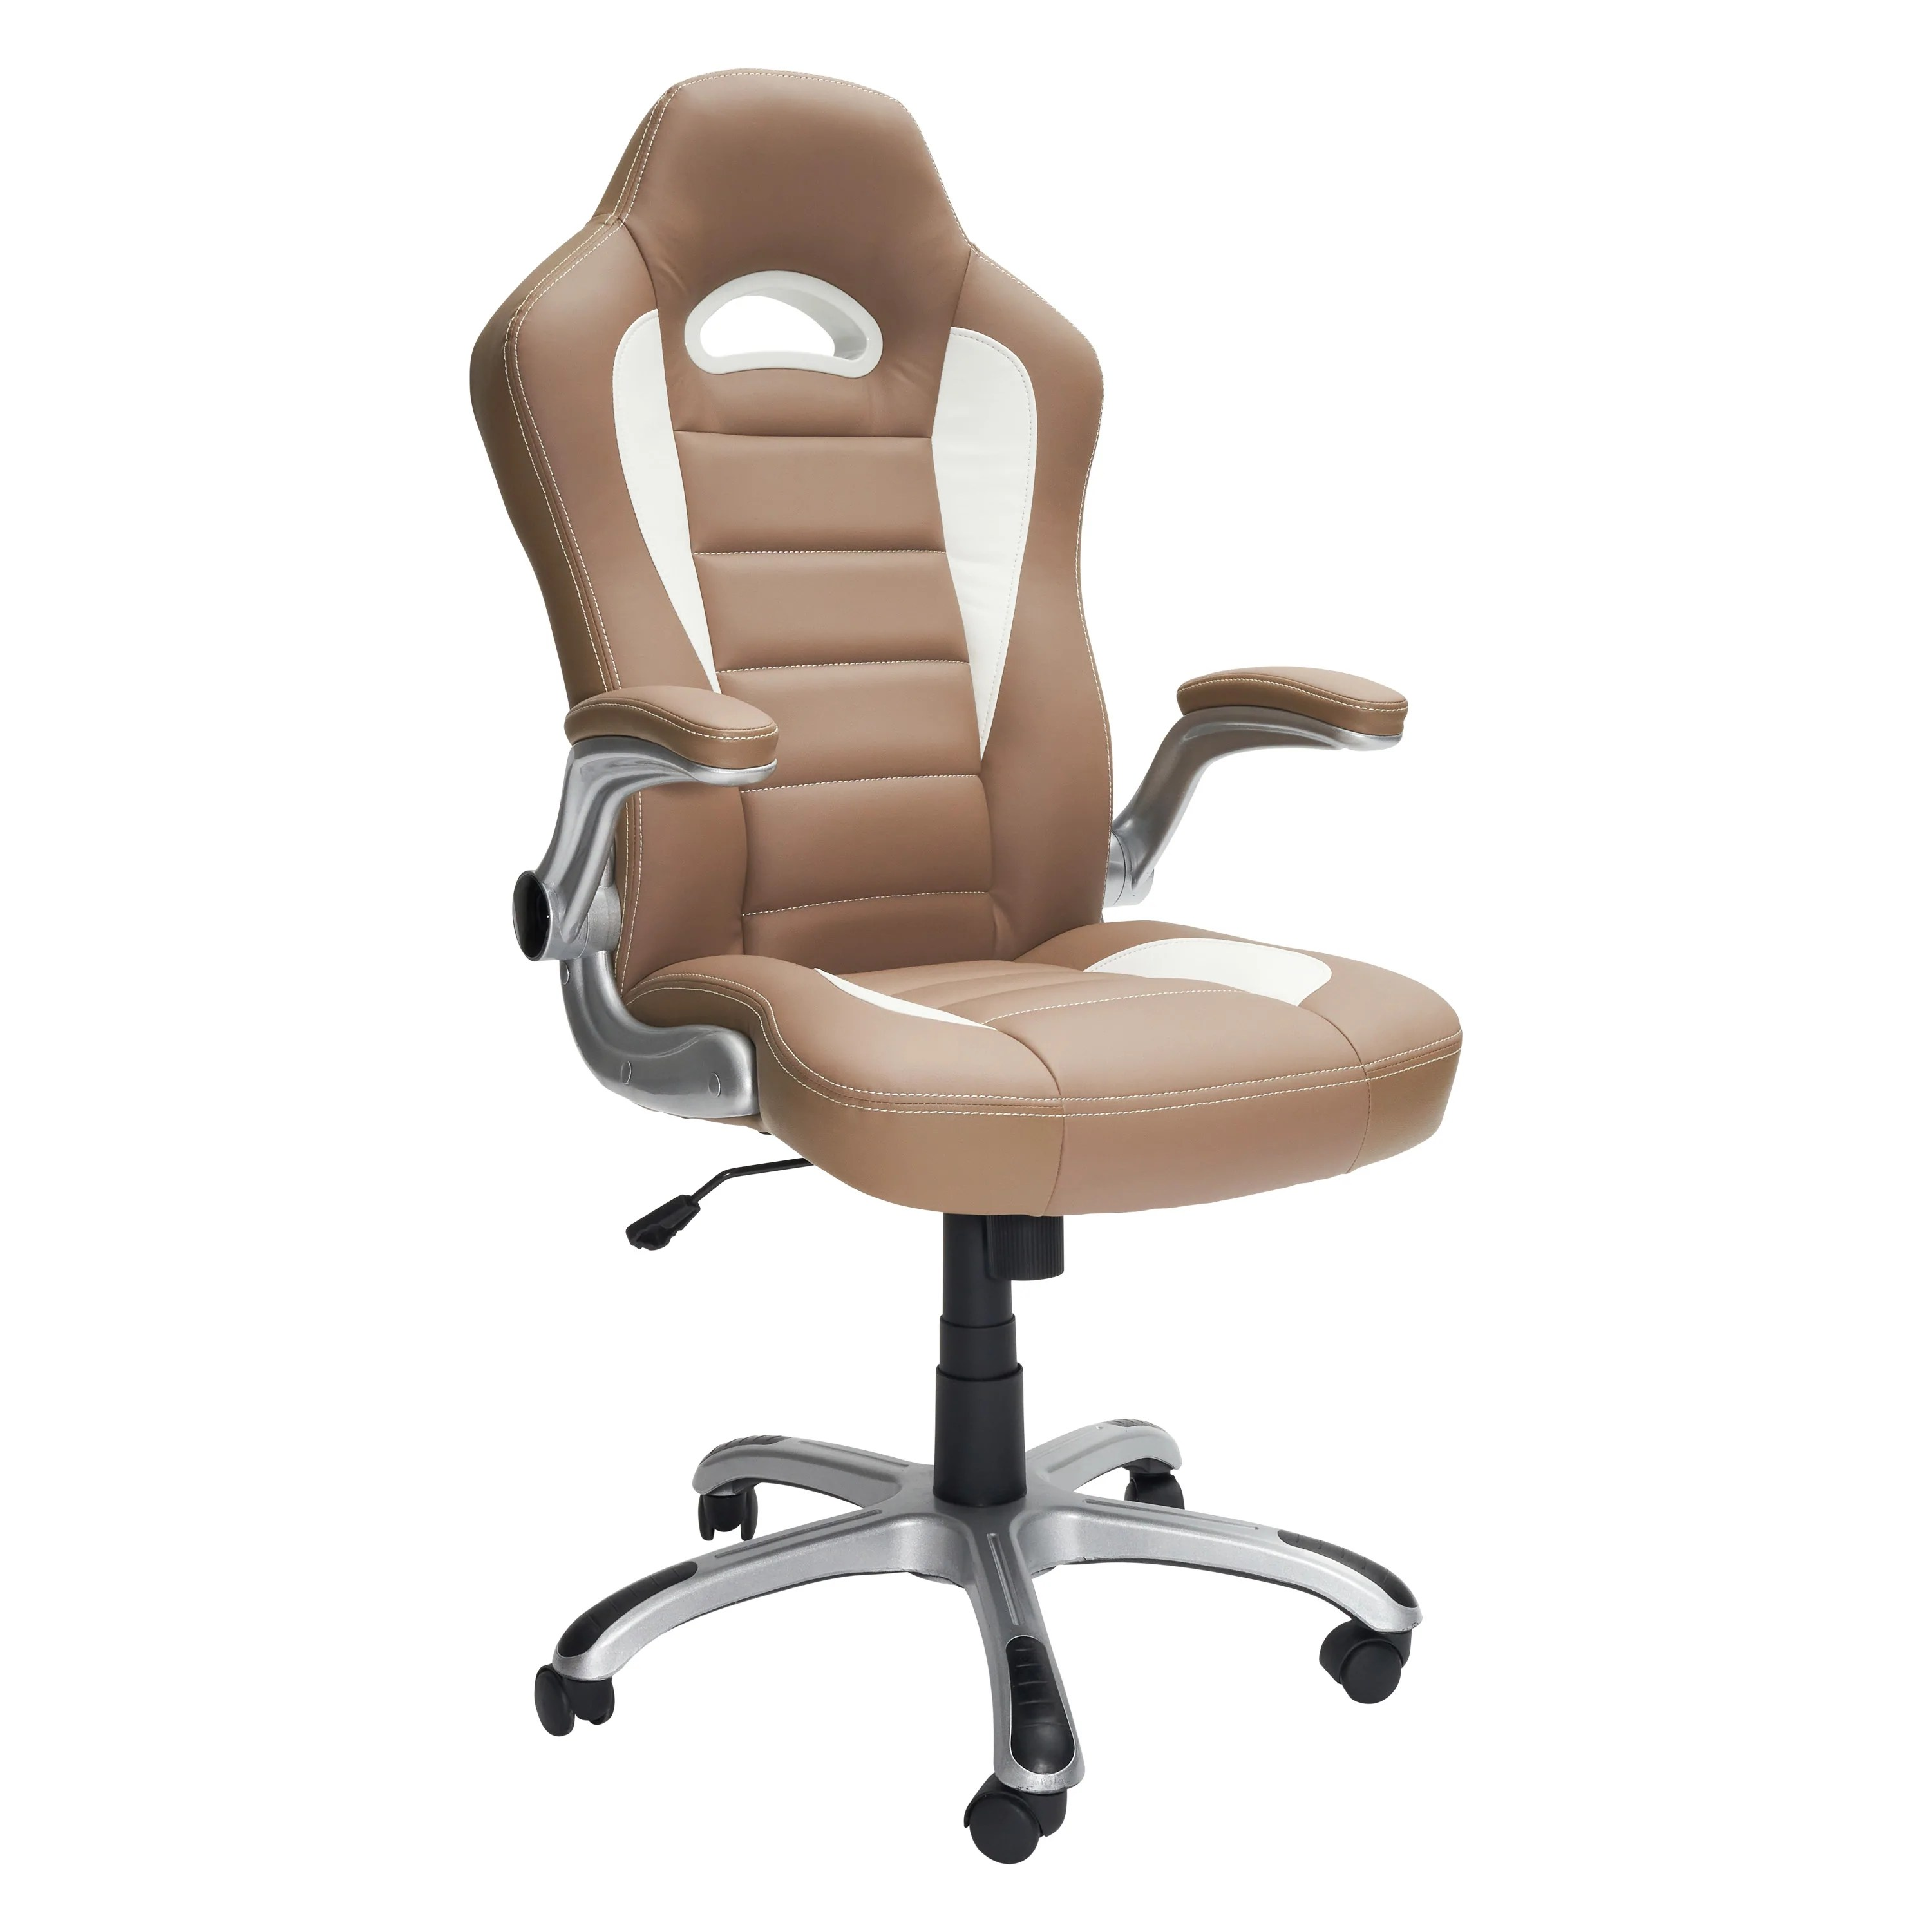 high back chairs with arms foam chair pads techni mobili executive sport race office